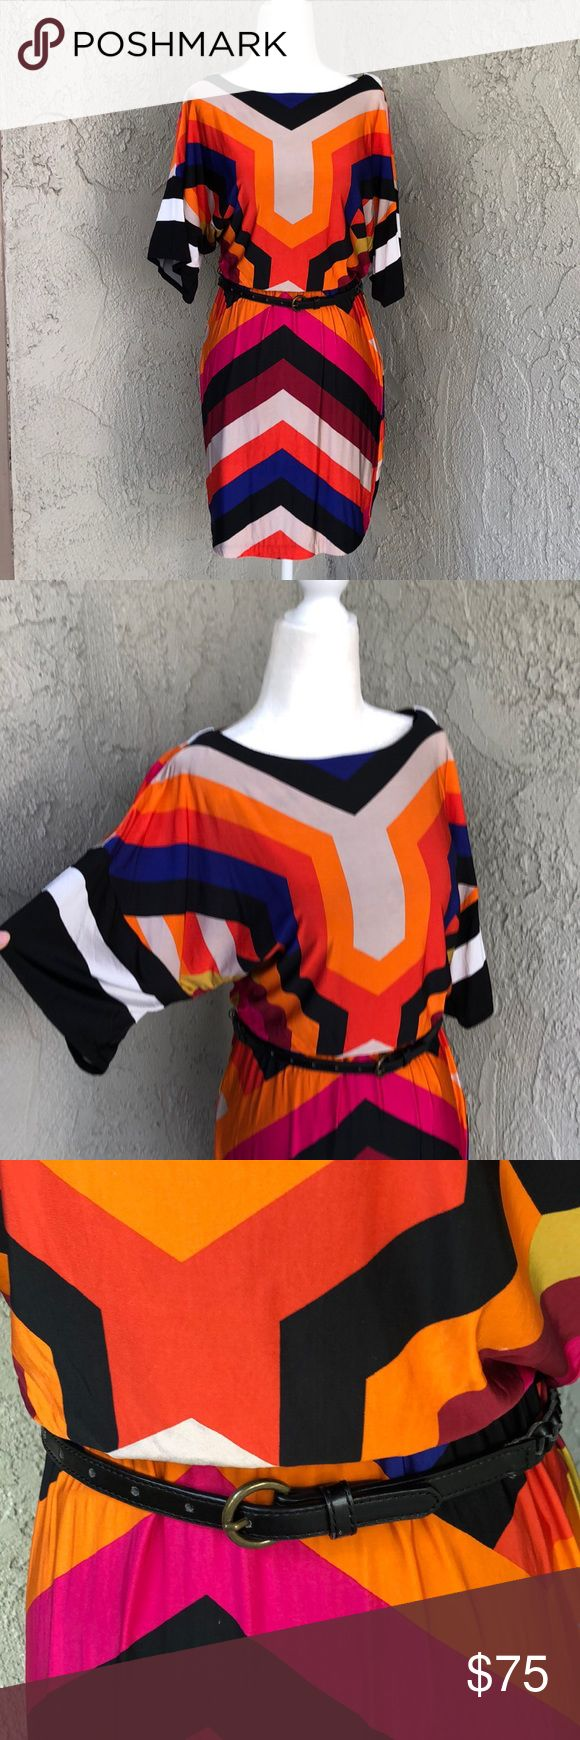 Trina Turk Geometric Print Belted Dolphin Dress 4 This vibrant geometric print d... 1